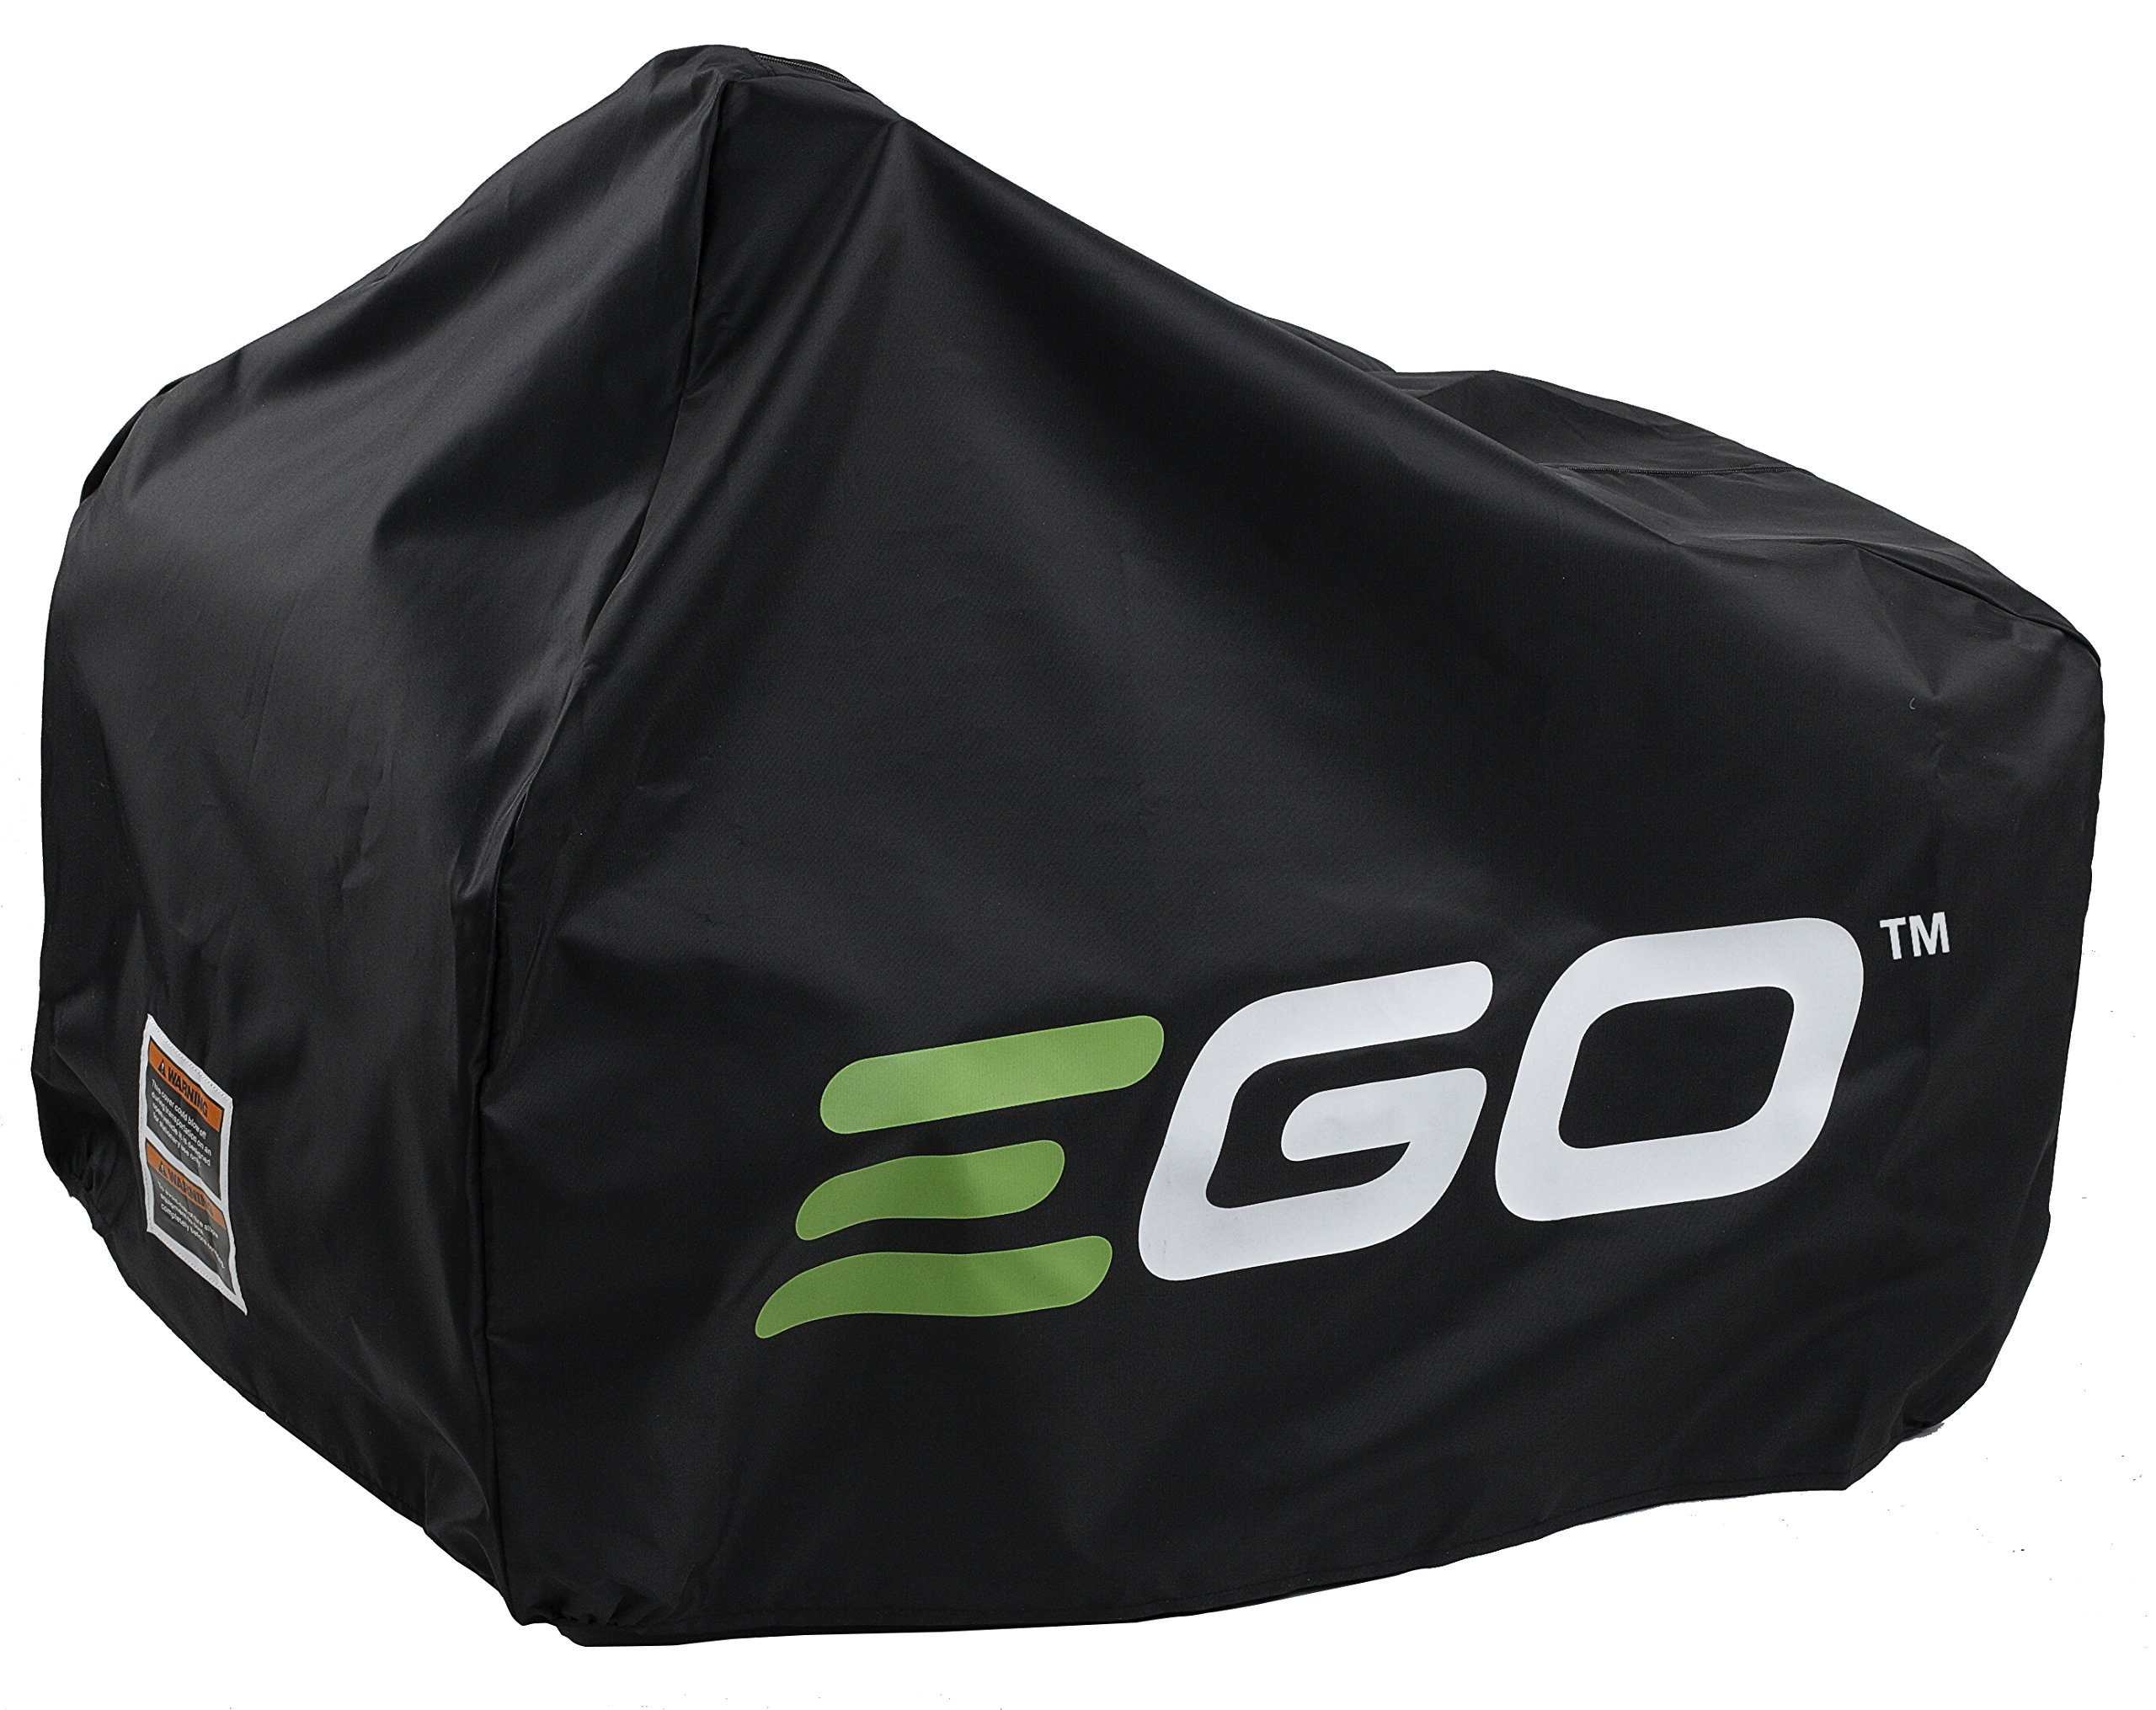 EGO Power+ CB002 Snow Blower Cover Durable Fabric to Protect Against Dust, Dirt and Debris